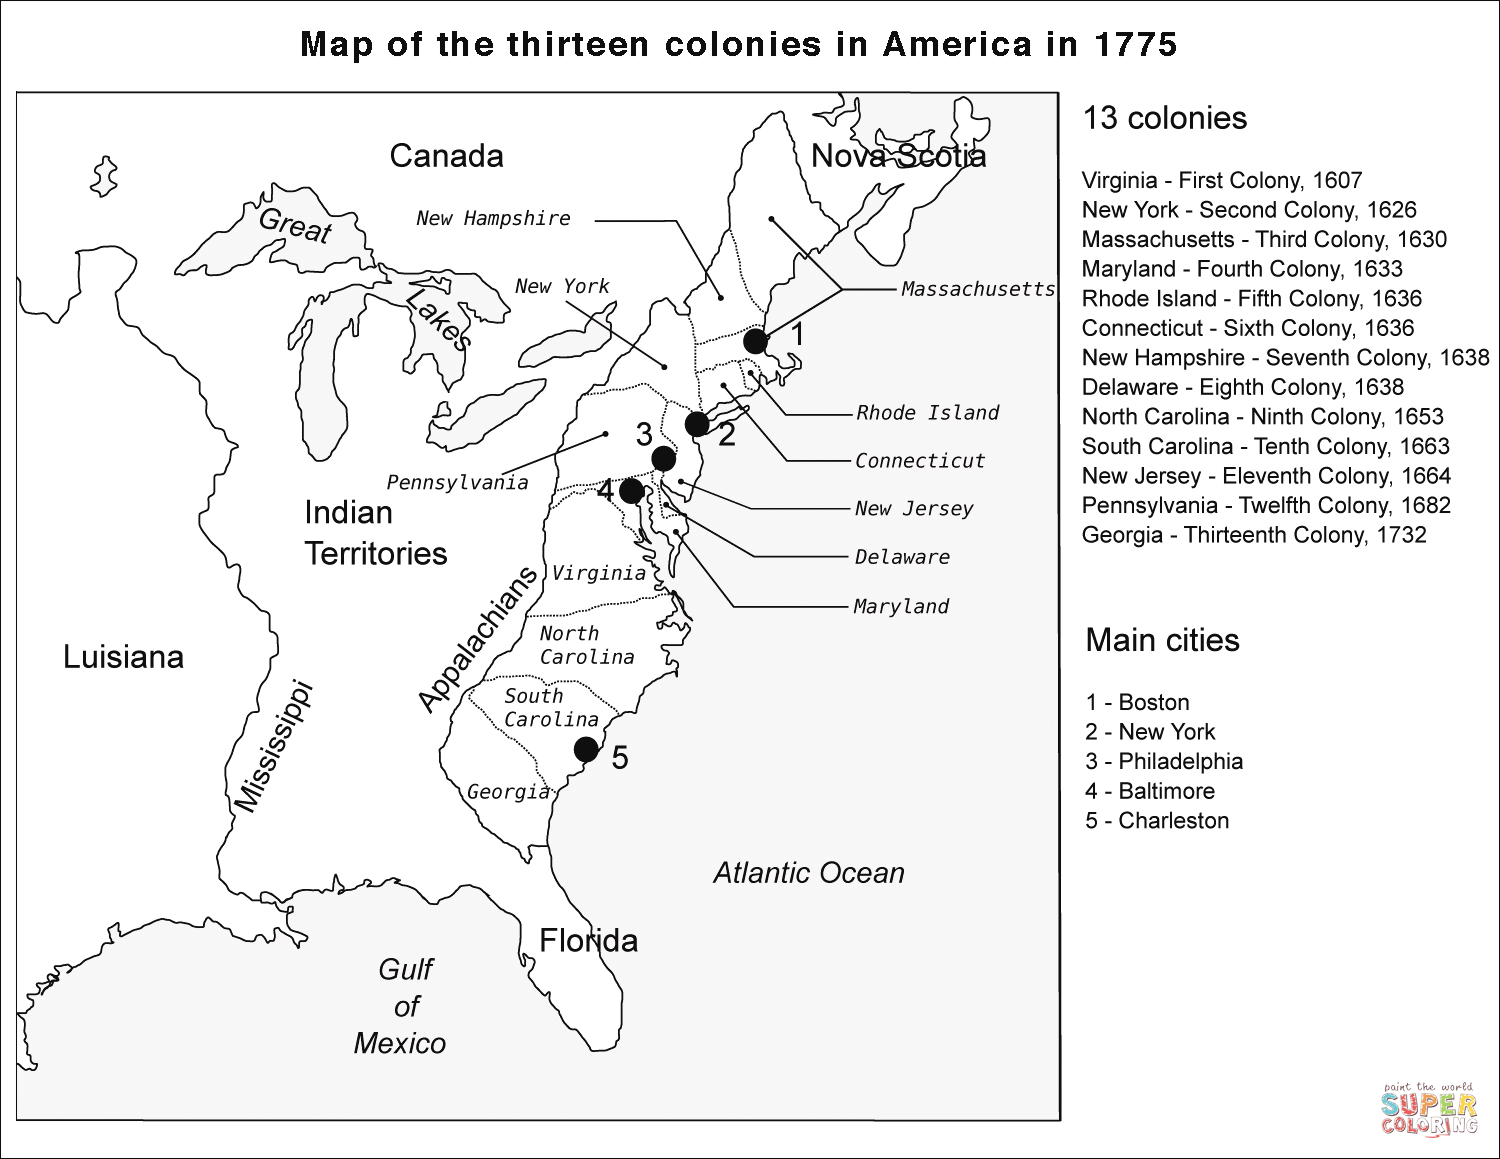 Thirteen Colonies Blank Map Coloring Page   Free Printable Coloring - 13 Colonies Blank Map Printable